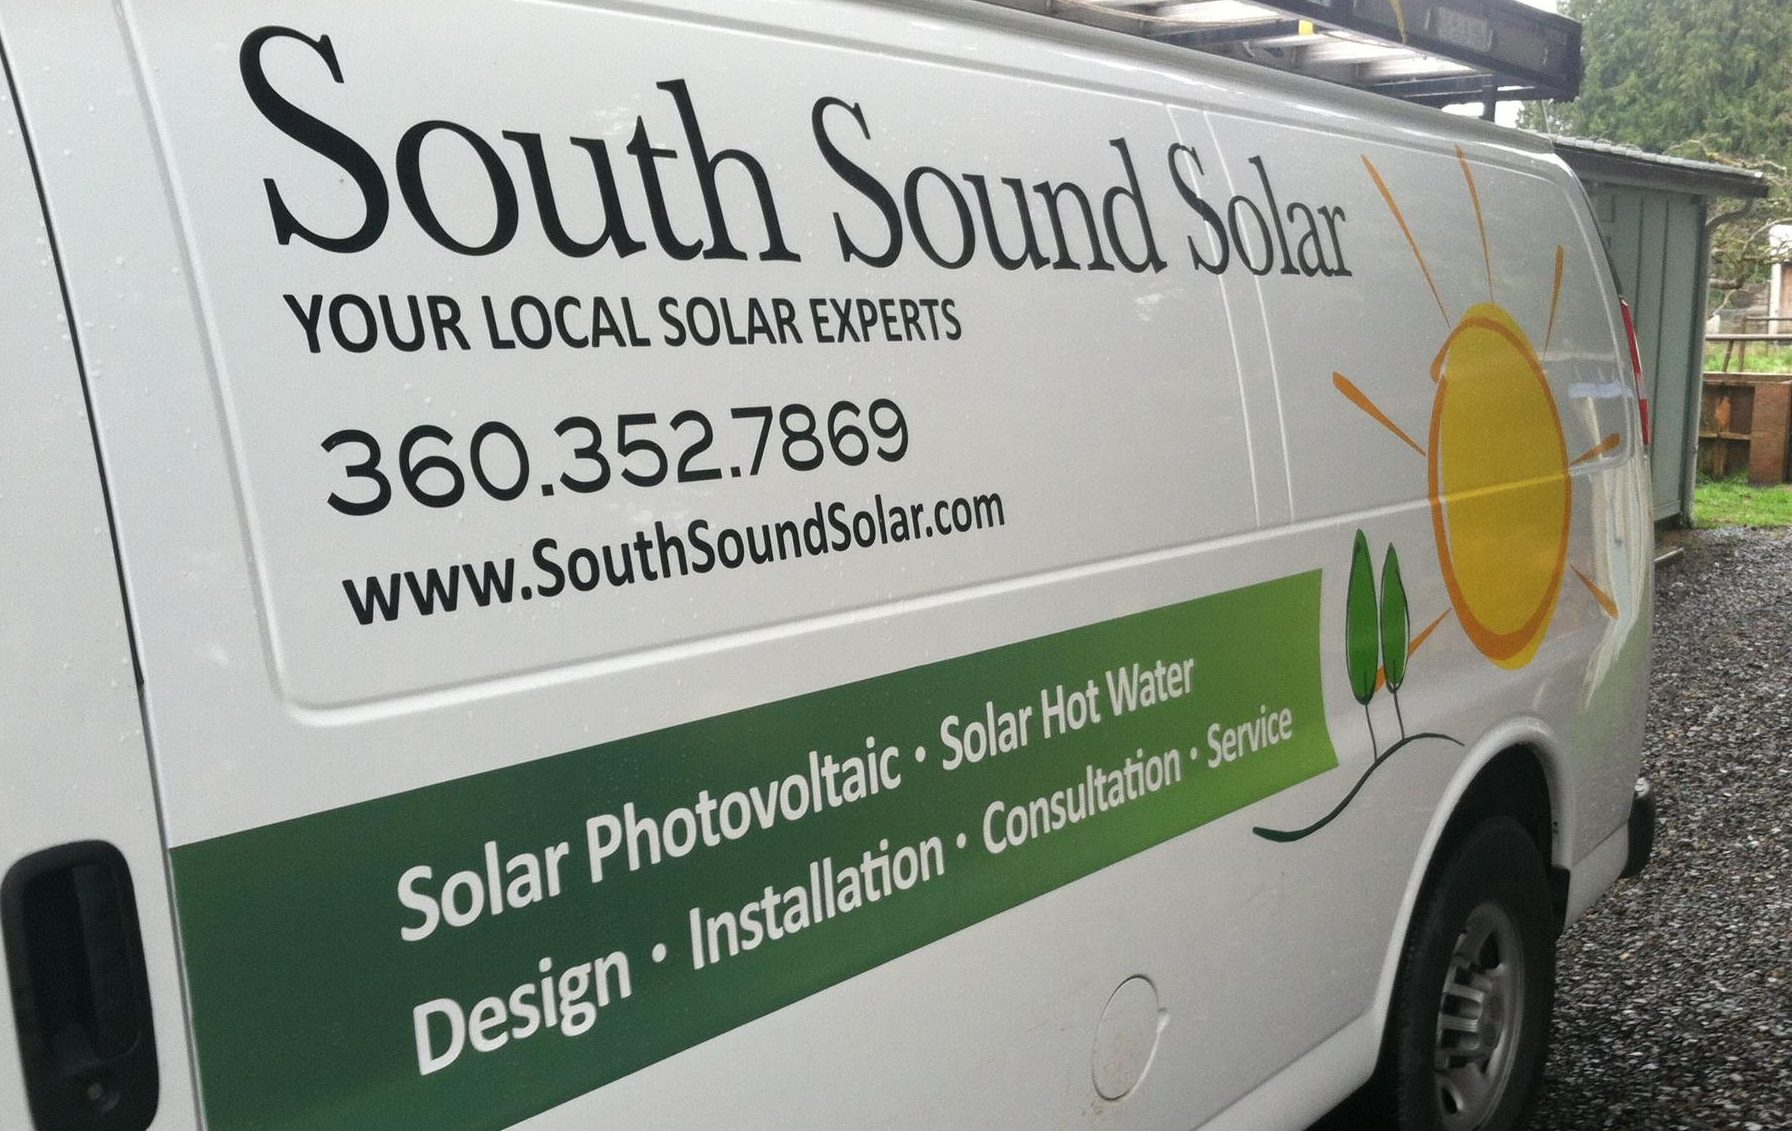 Photo of the side of a South Sound Solar van, with the logo and details all showing.